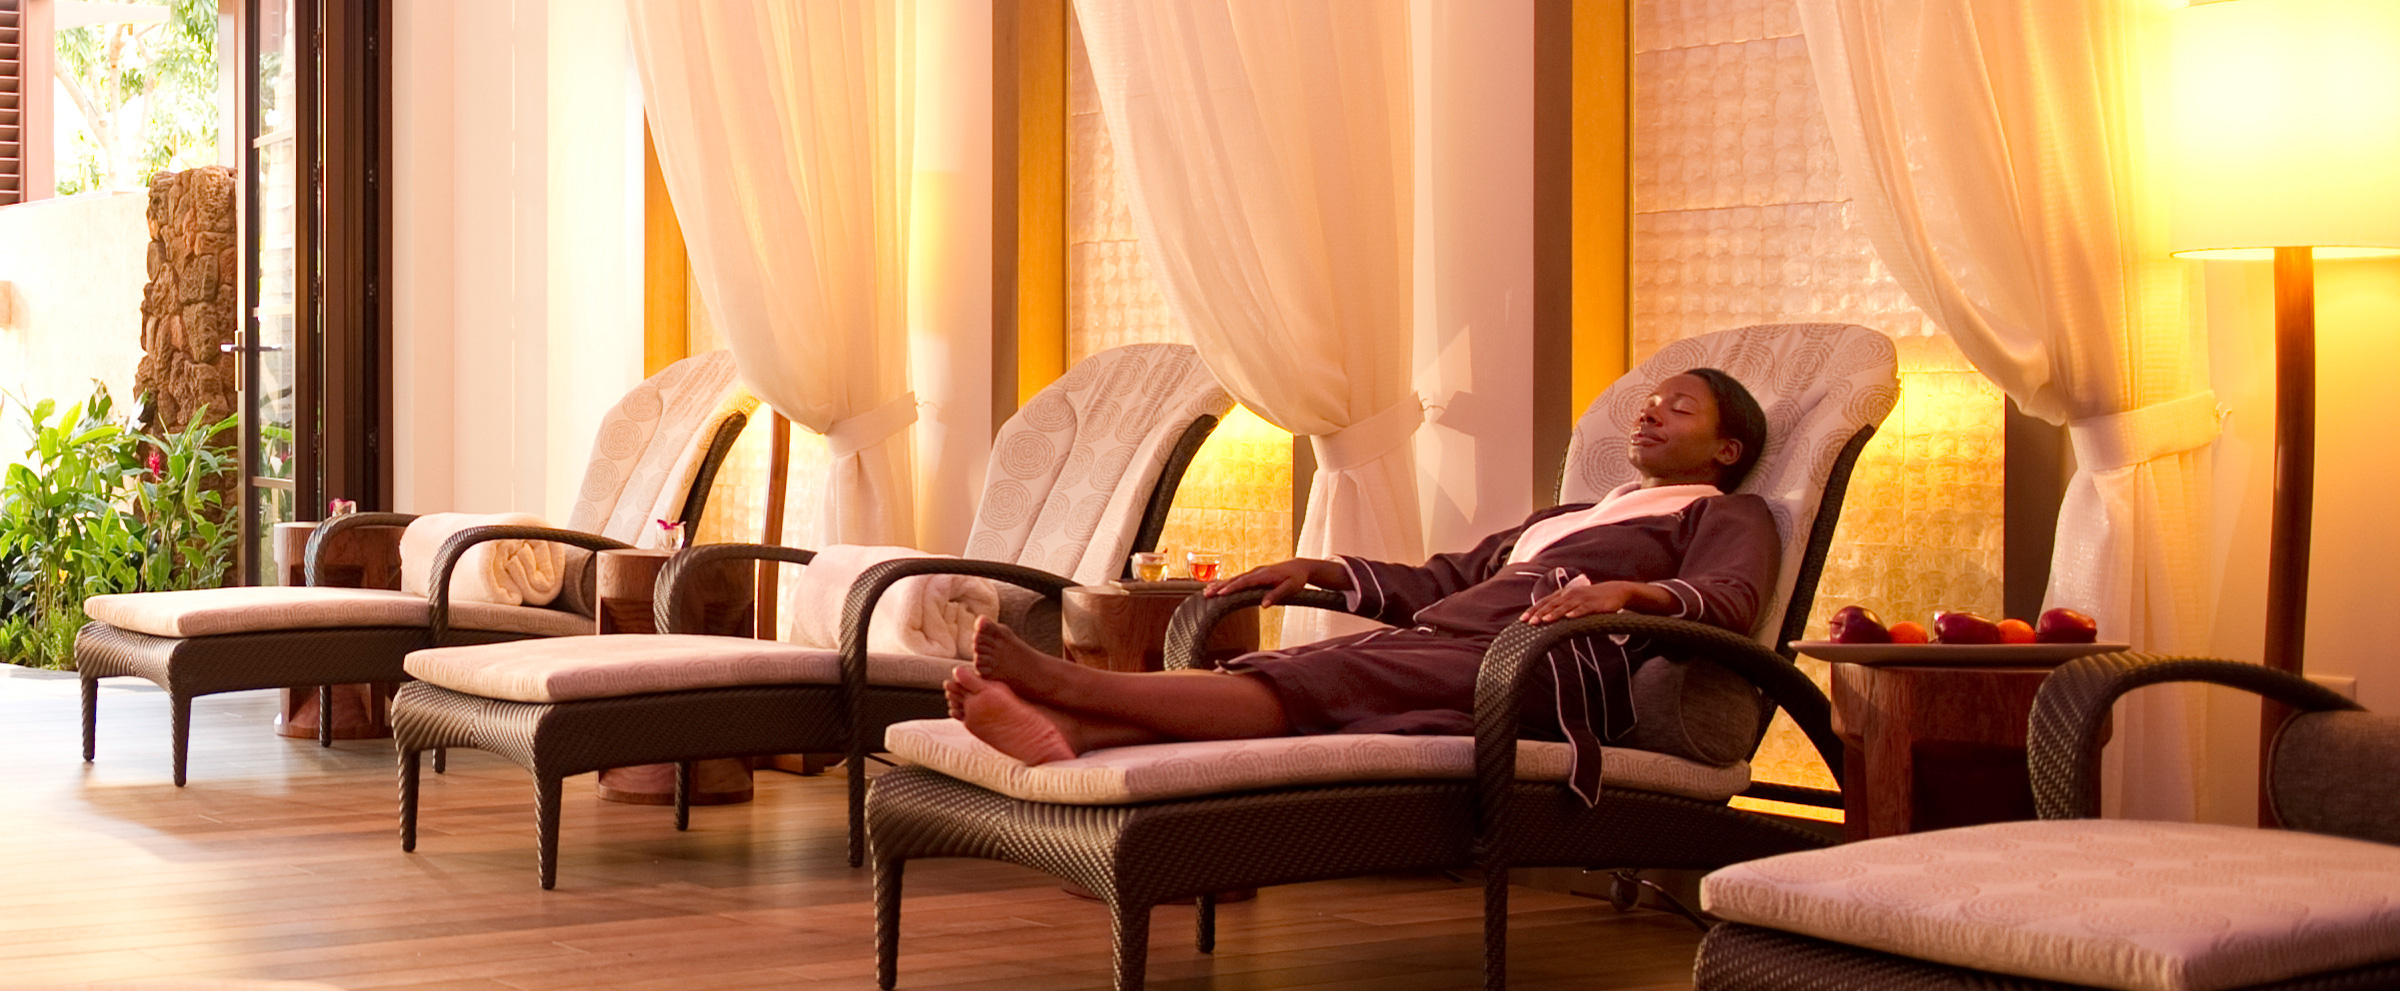 Spa lounge chair -  A Woman In A Spa Robe Relaxes In A Lounge Chair Along A Wall With White